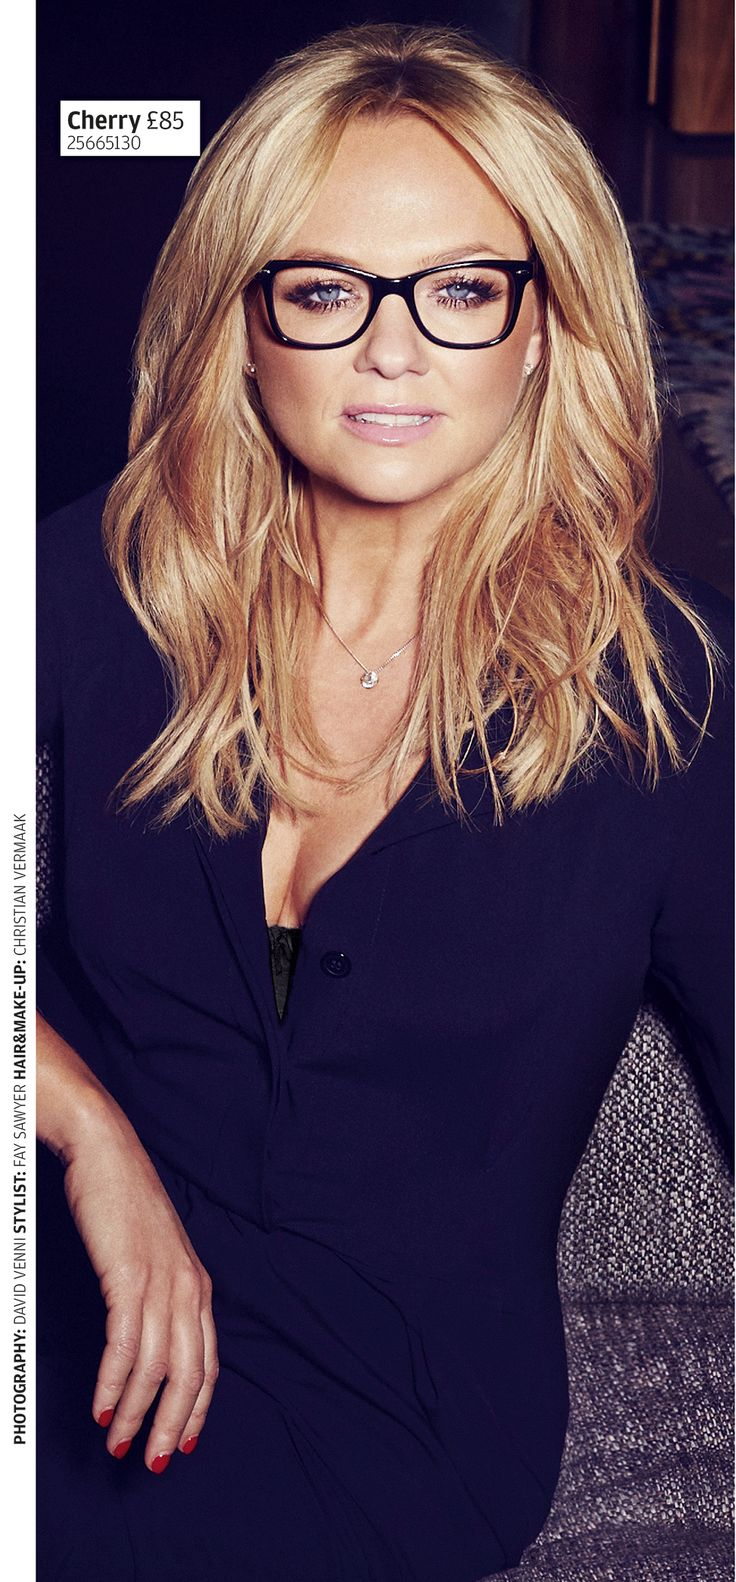 Emma Bunton in Cherry (black) by Specsavers.